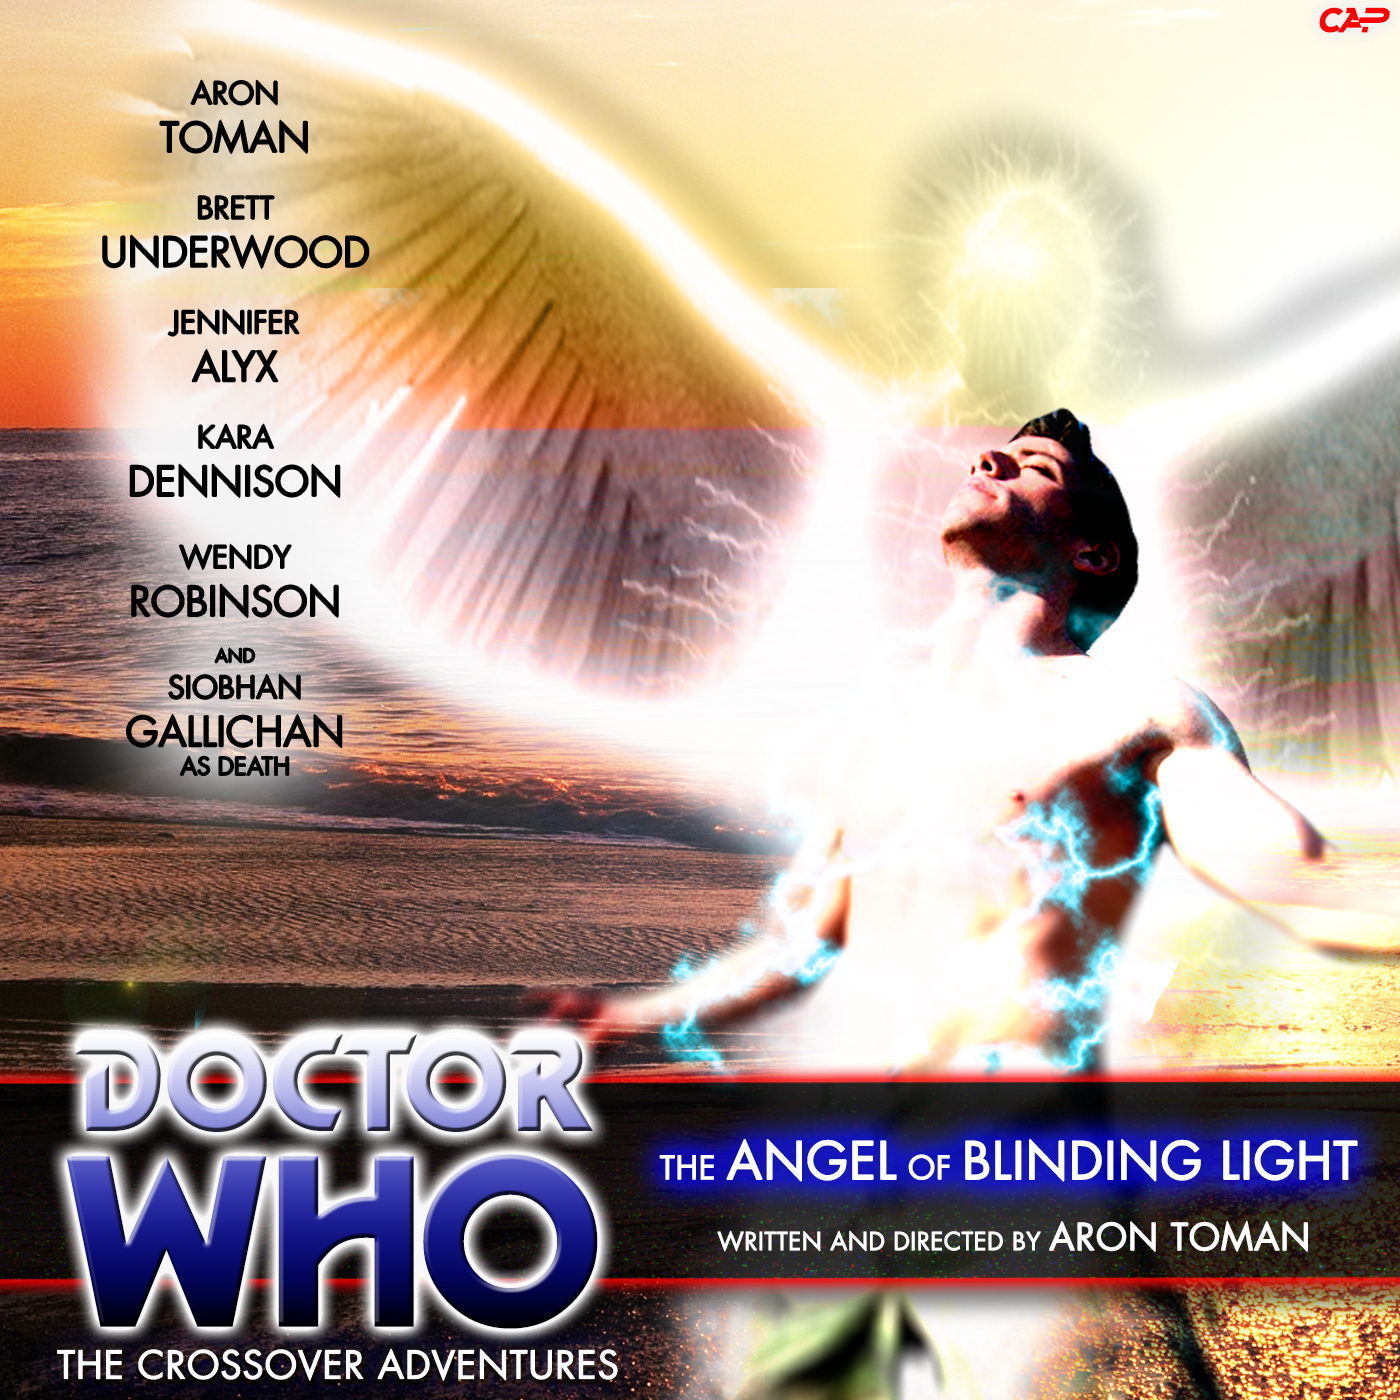 'Doctor Who: The Angel of Blinding Light' Episode One Now Online!